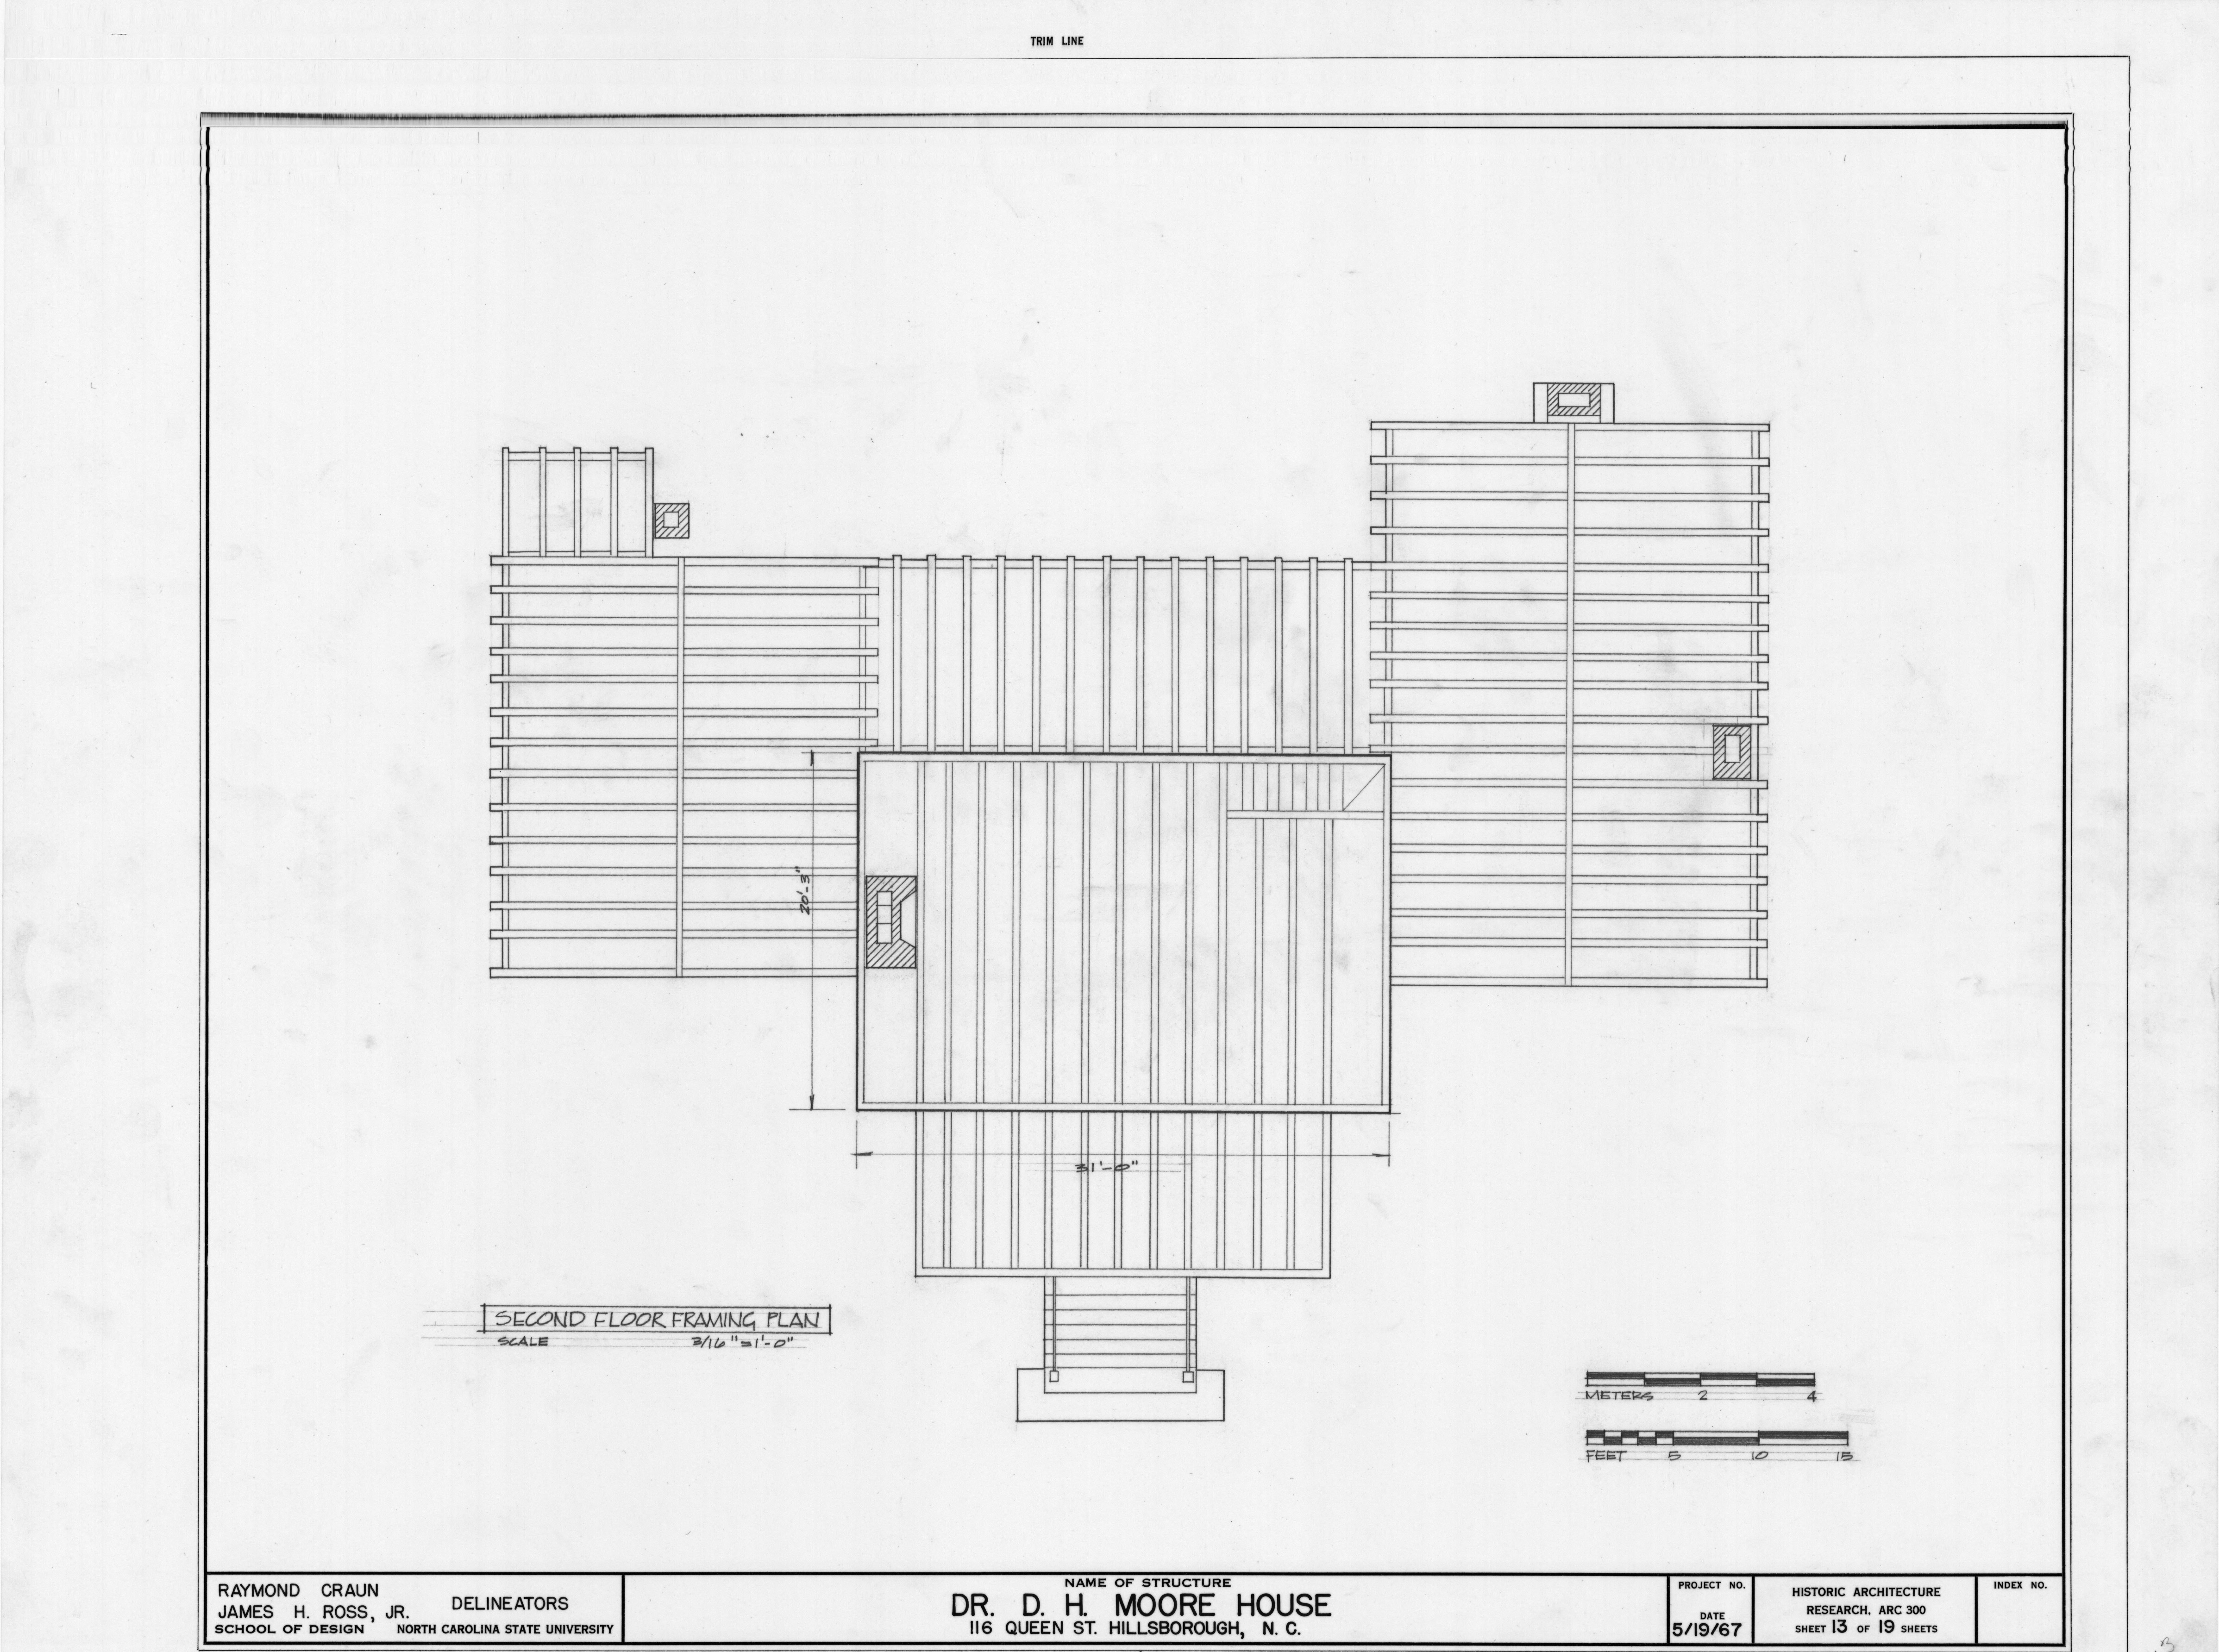 second floor framing plan hasell nash house hillsborough